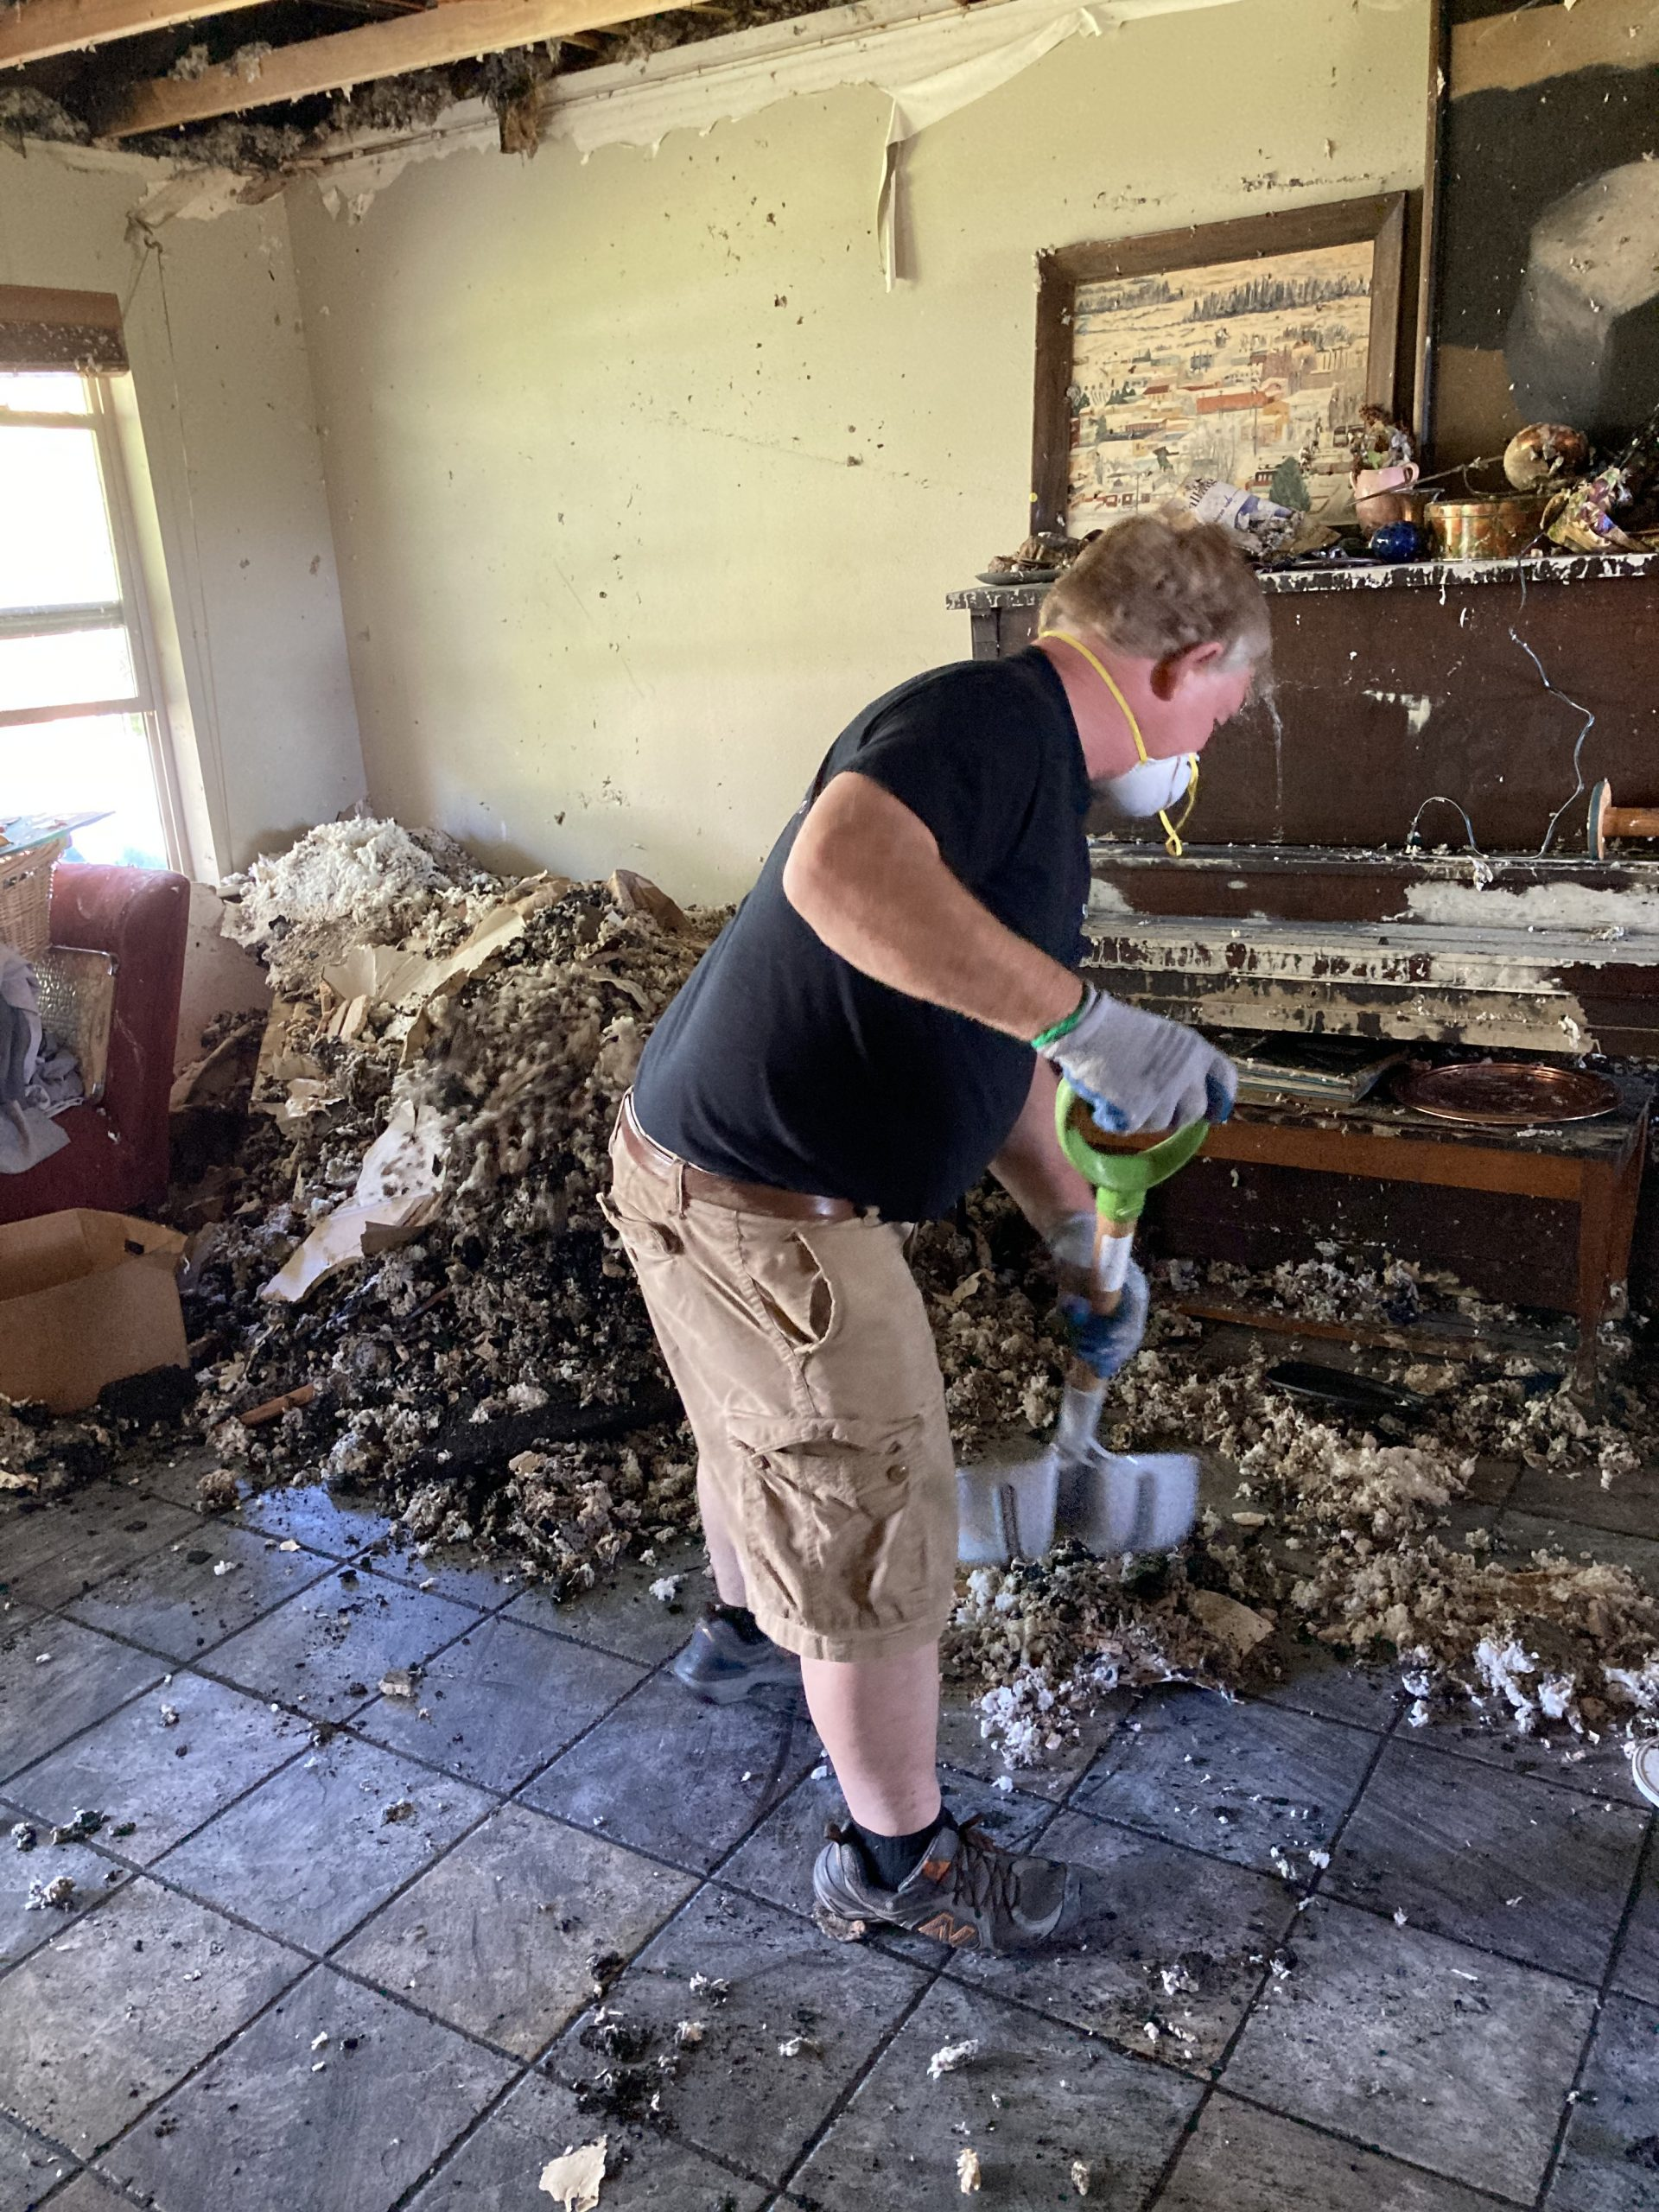 Fire and Smoke Damage Mitigation and Clean Up